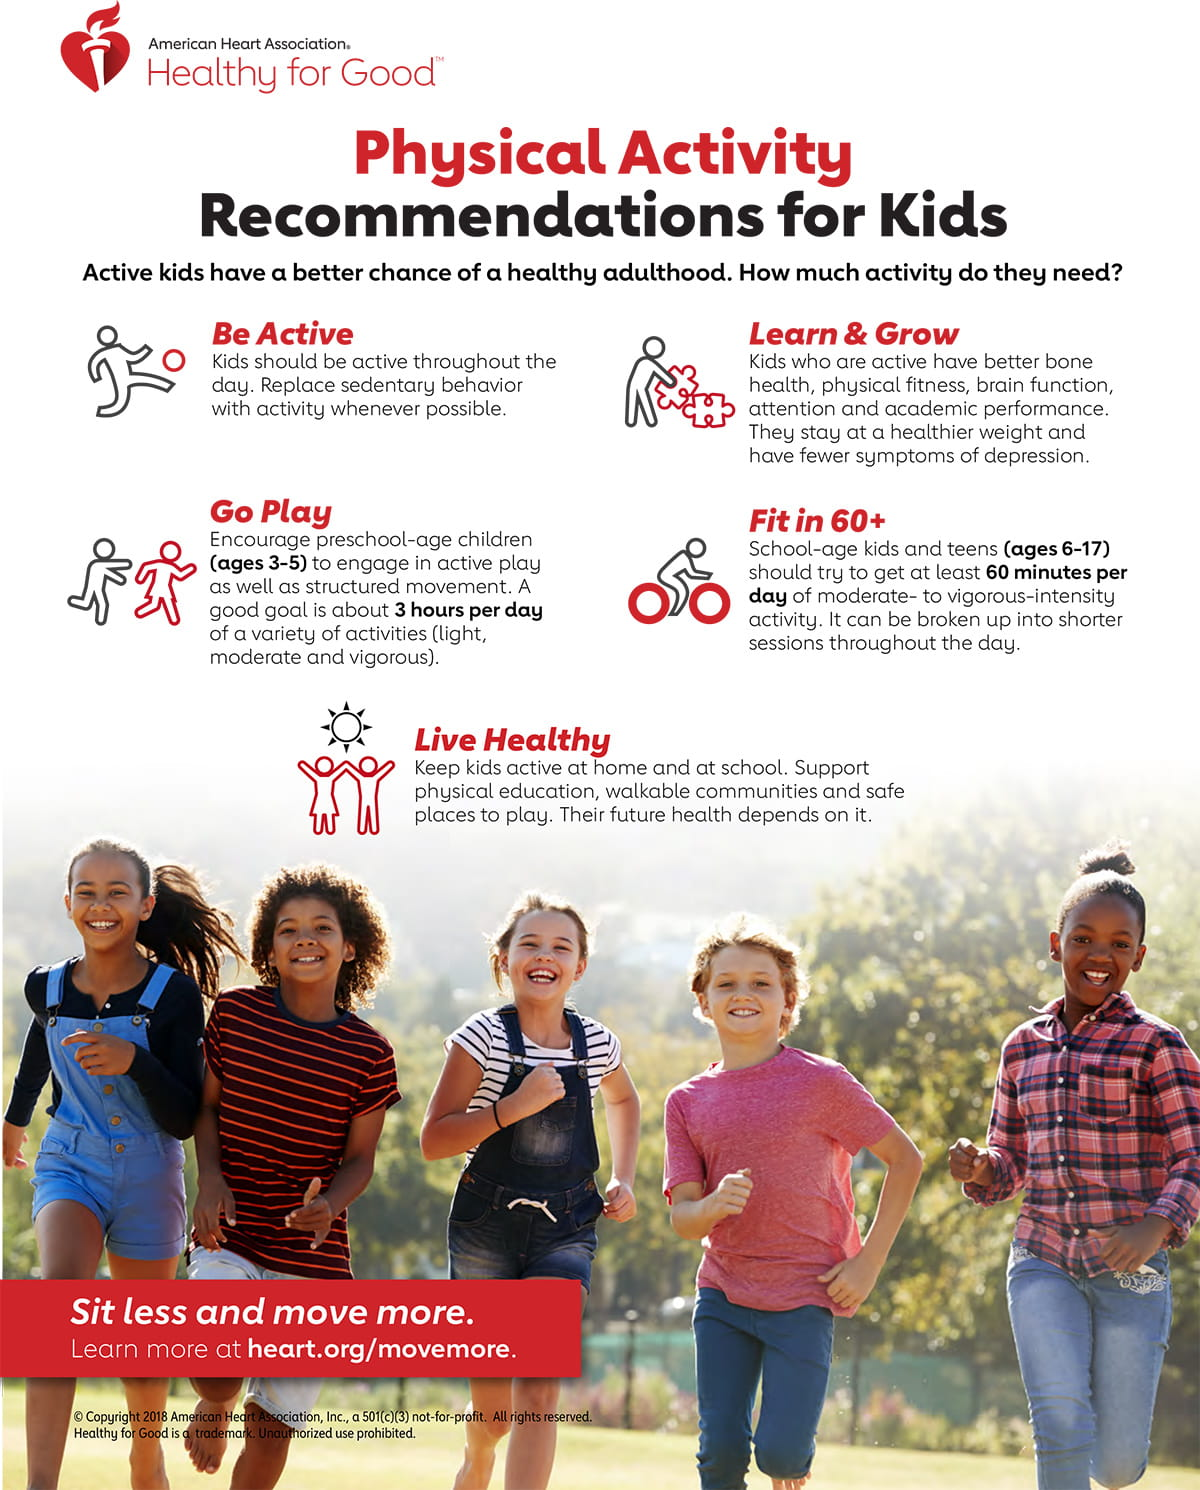 American Heart Association Recommendations For Physical